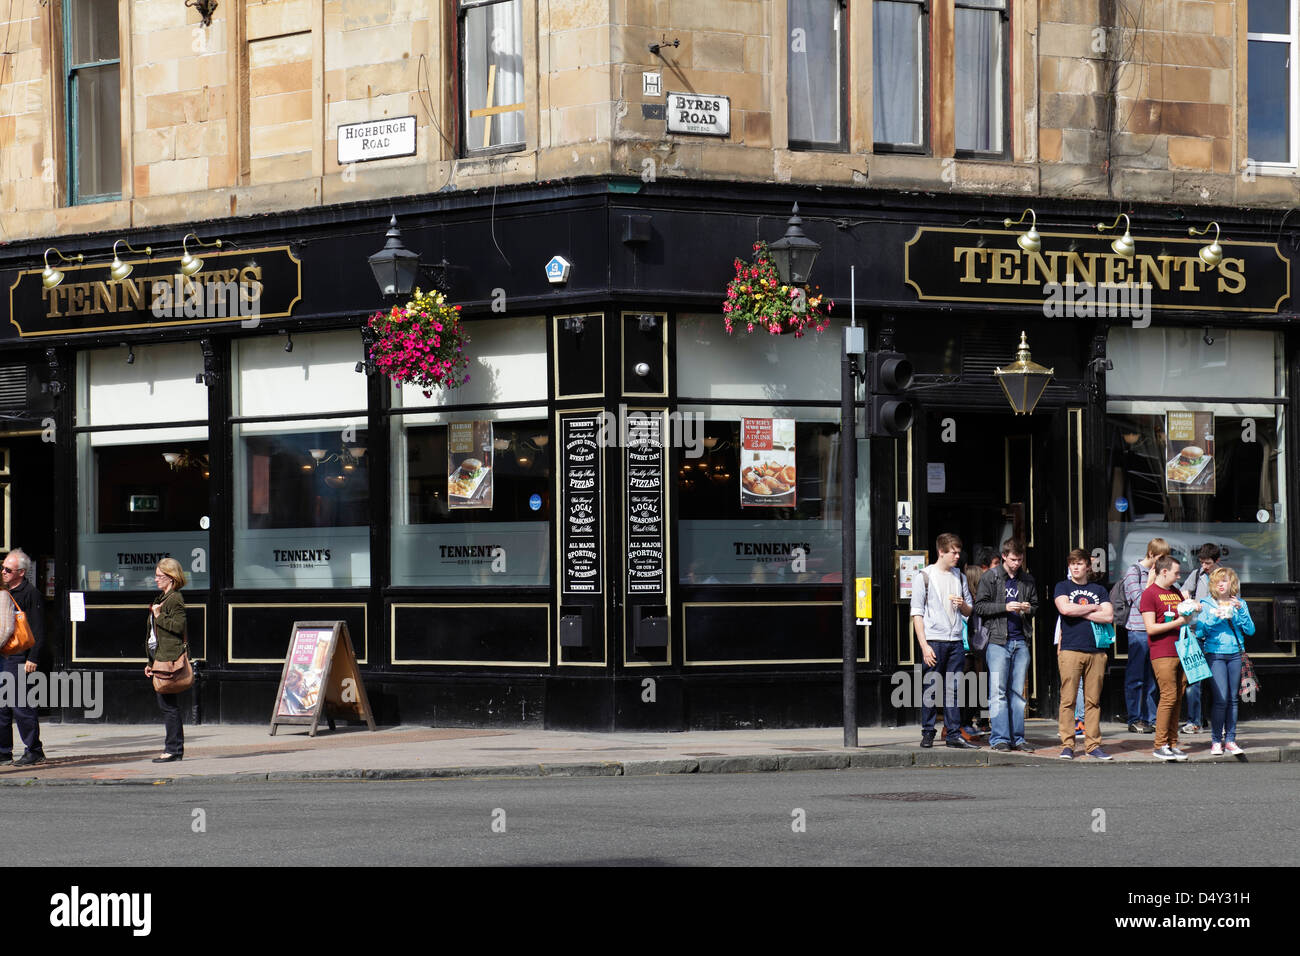 Tennent's Bar, in the West End of Glasgow, Scotland, UK - Stock Image